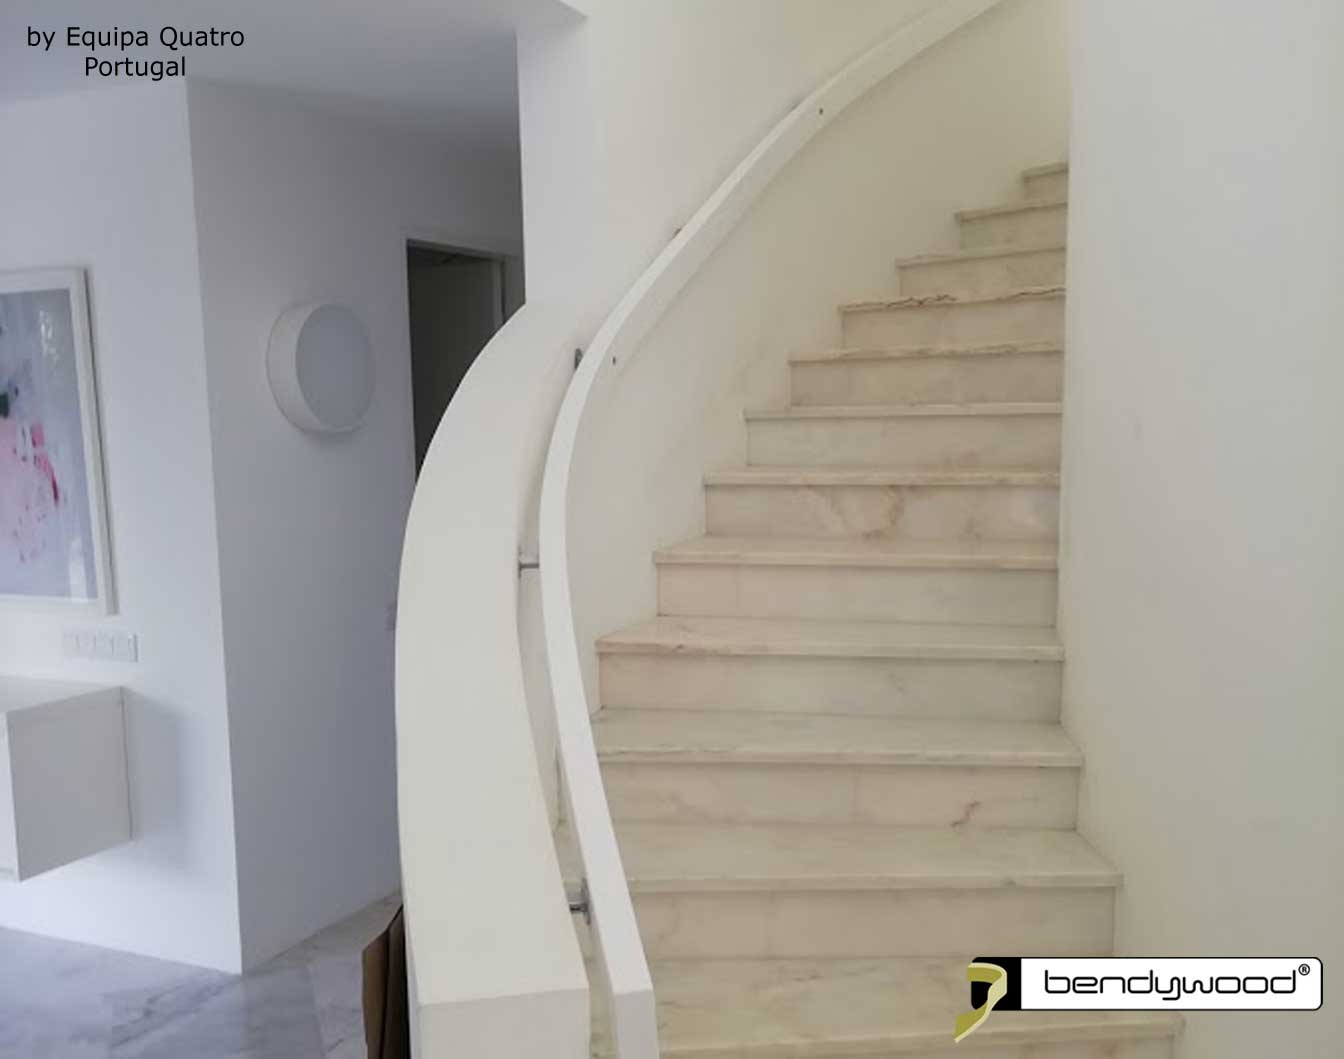 Bending wood Bendywood® - Modern curved wooden stair railing